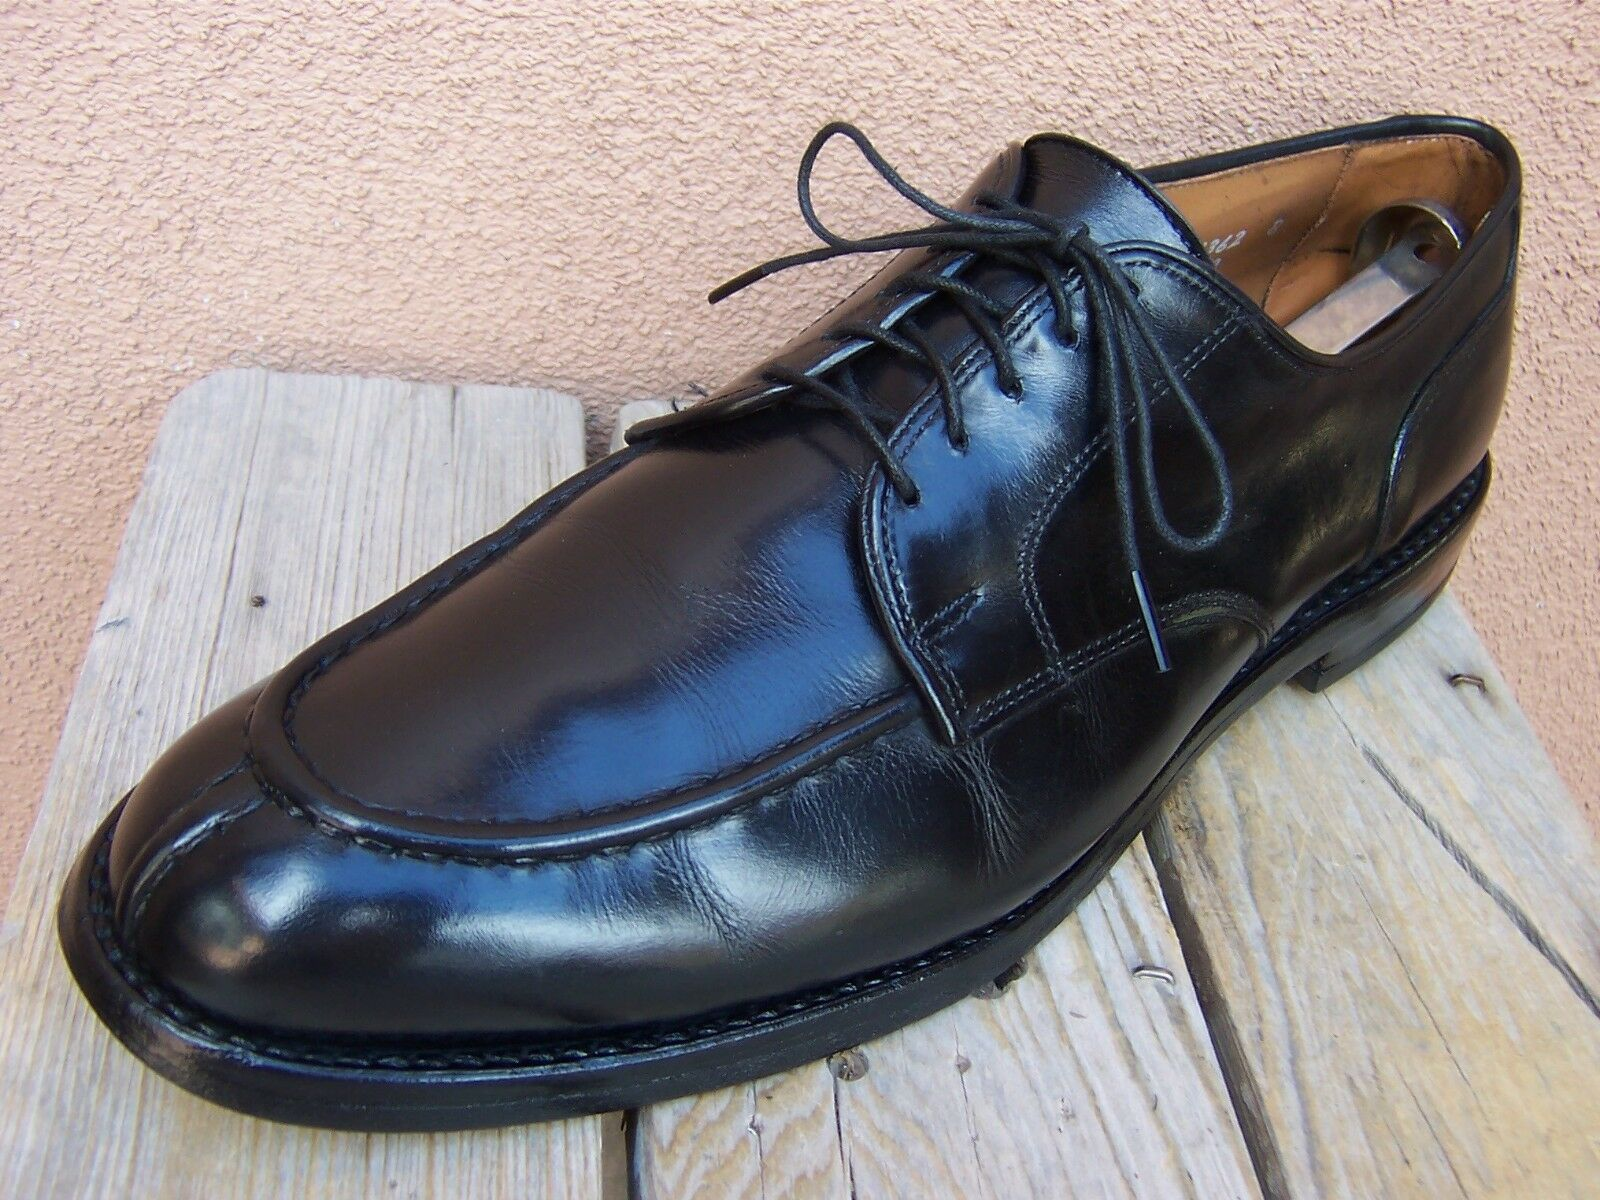 ALLEN EDMONDS Mens Dress Shoes Black Leather Comfort Lace Up Oxford Size 11.5C